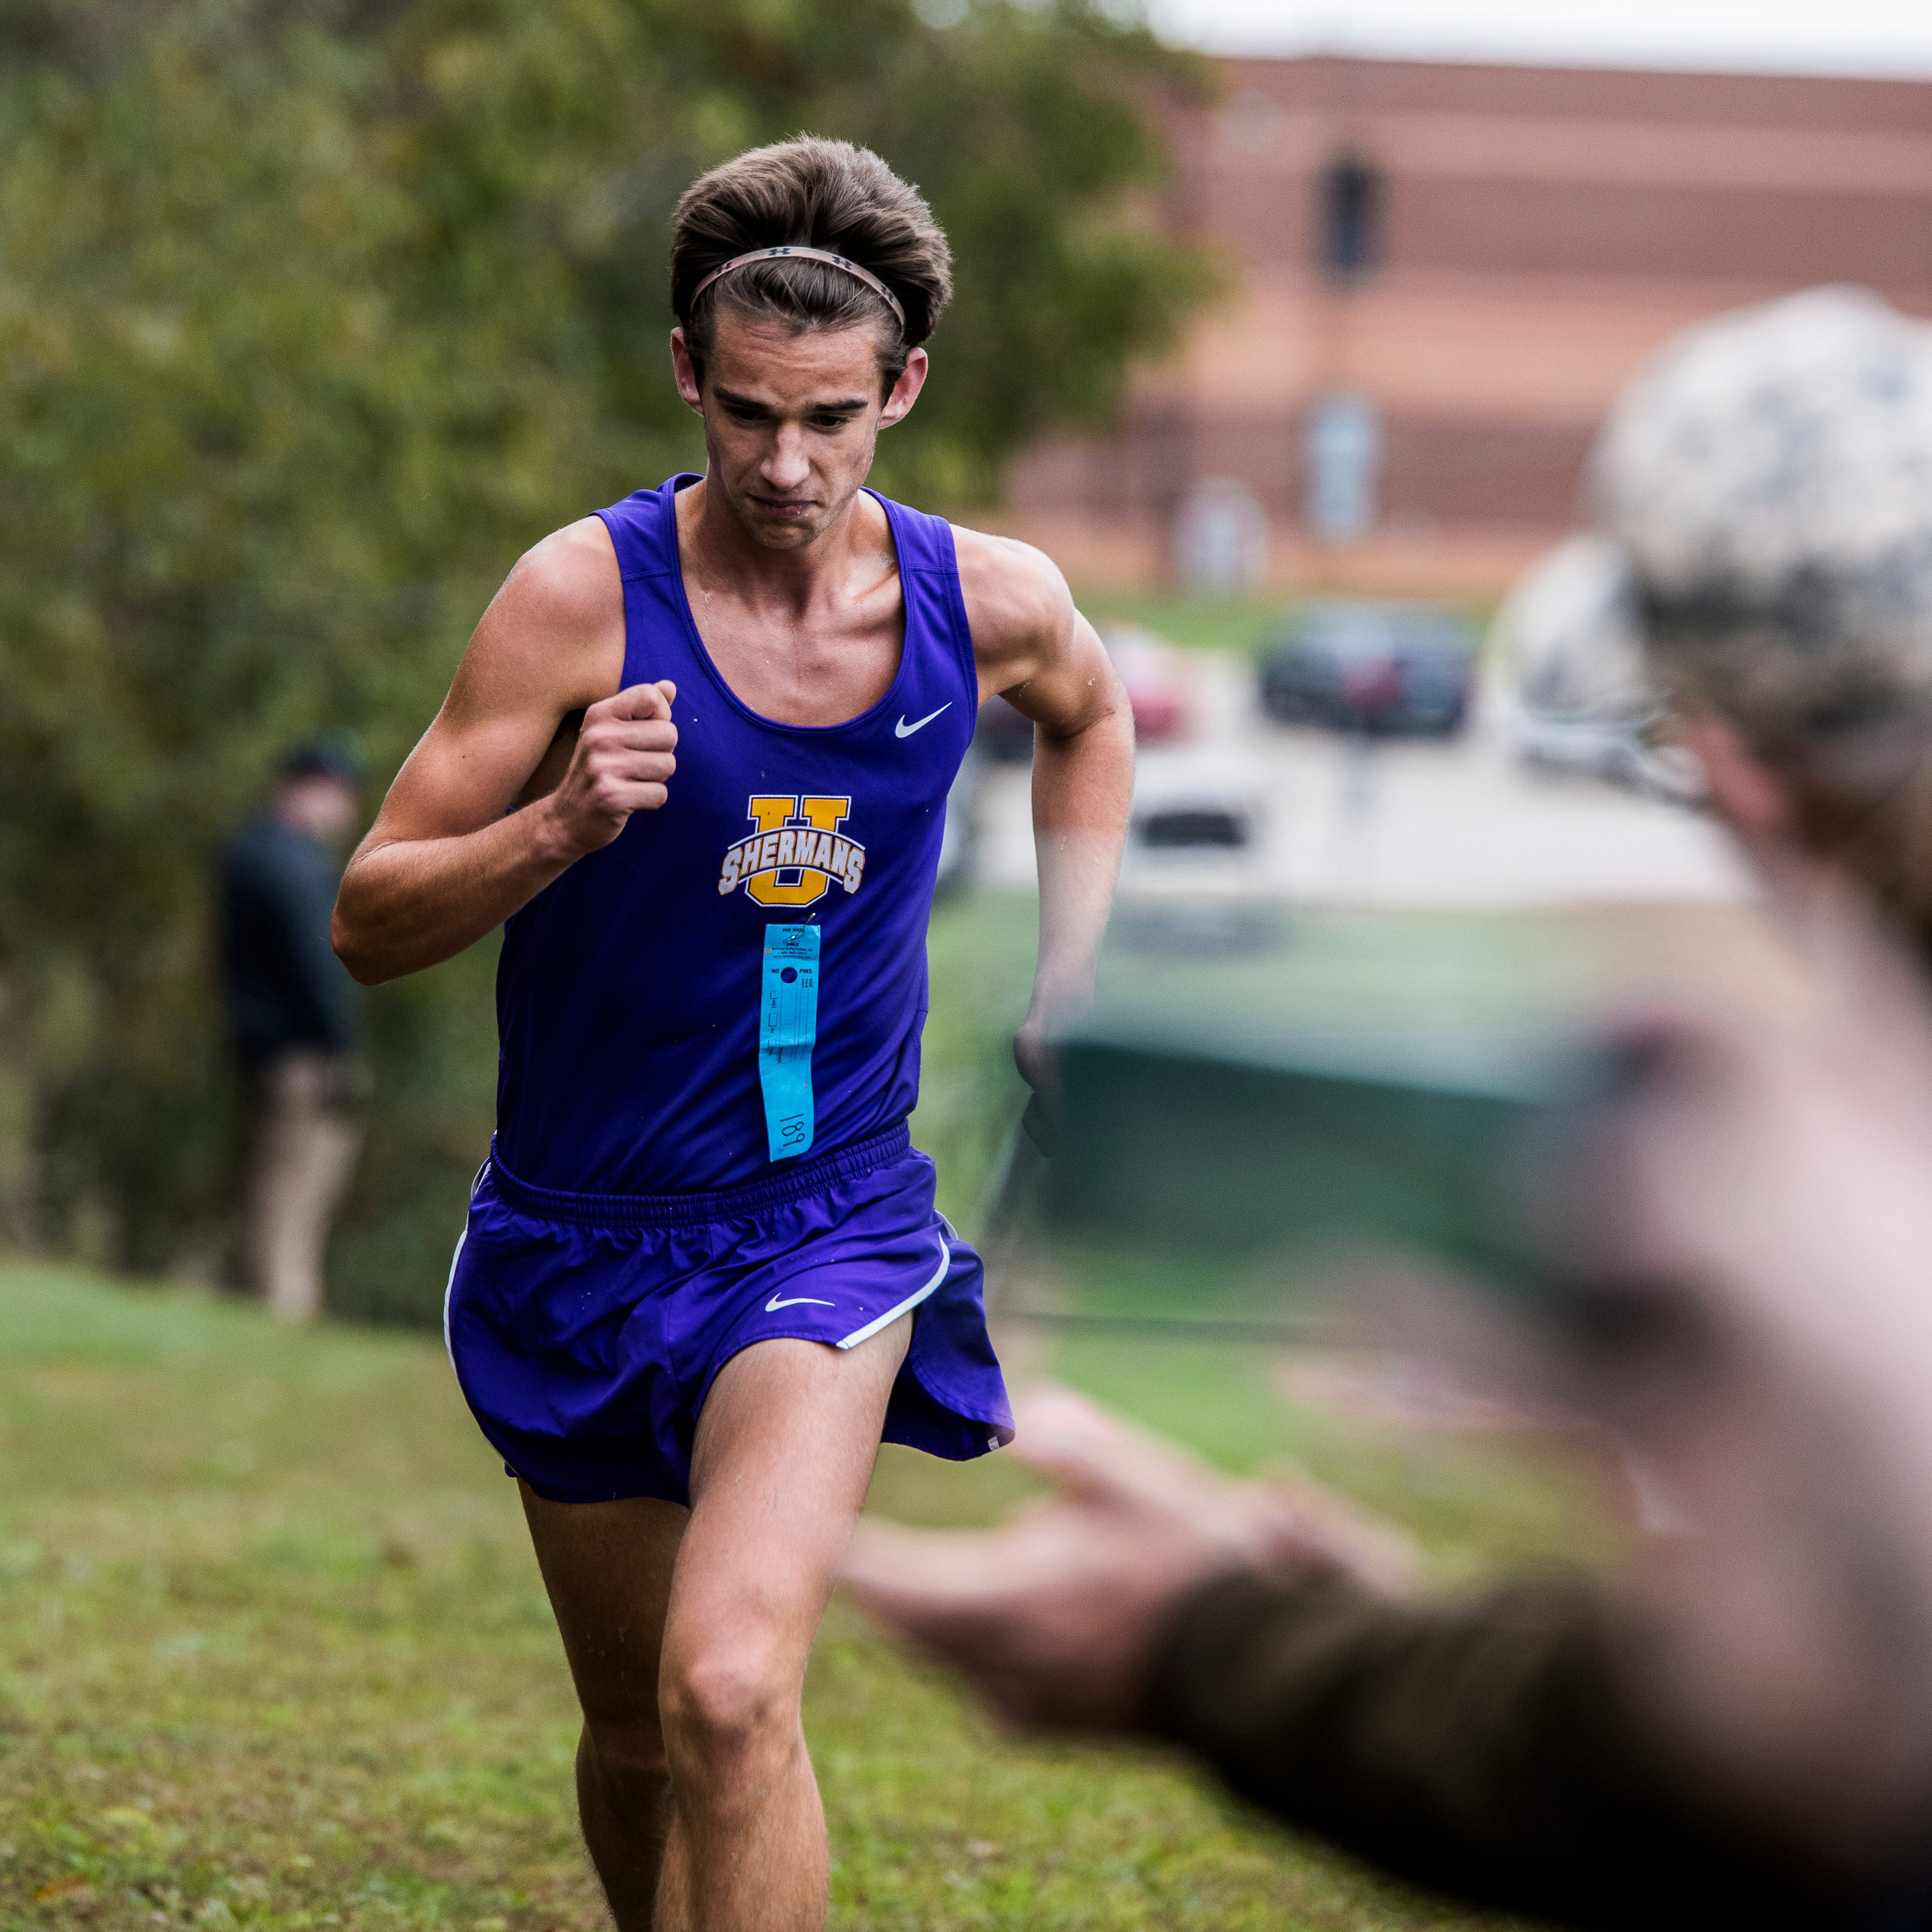 The crowd cheers and takes video as Unioto's Tucker Markko finishes first out of 65 runners with a total time of 16:30 at the 2018 Scioto Valley Conference Cross Country Championships held at the Hopkins Farm in Huntington Township. The Unioto boys team would finish first place with an average time of 16:58.20 and the Westfall boys team received second place with an average time of 18:34.60.